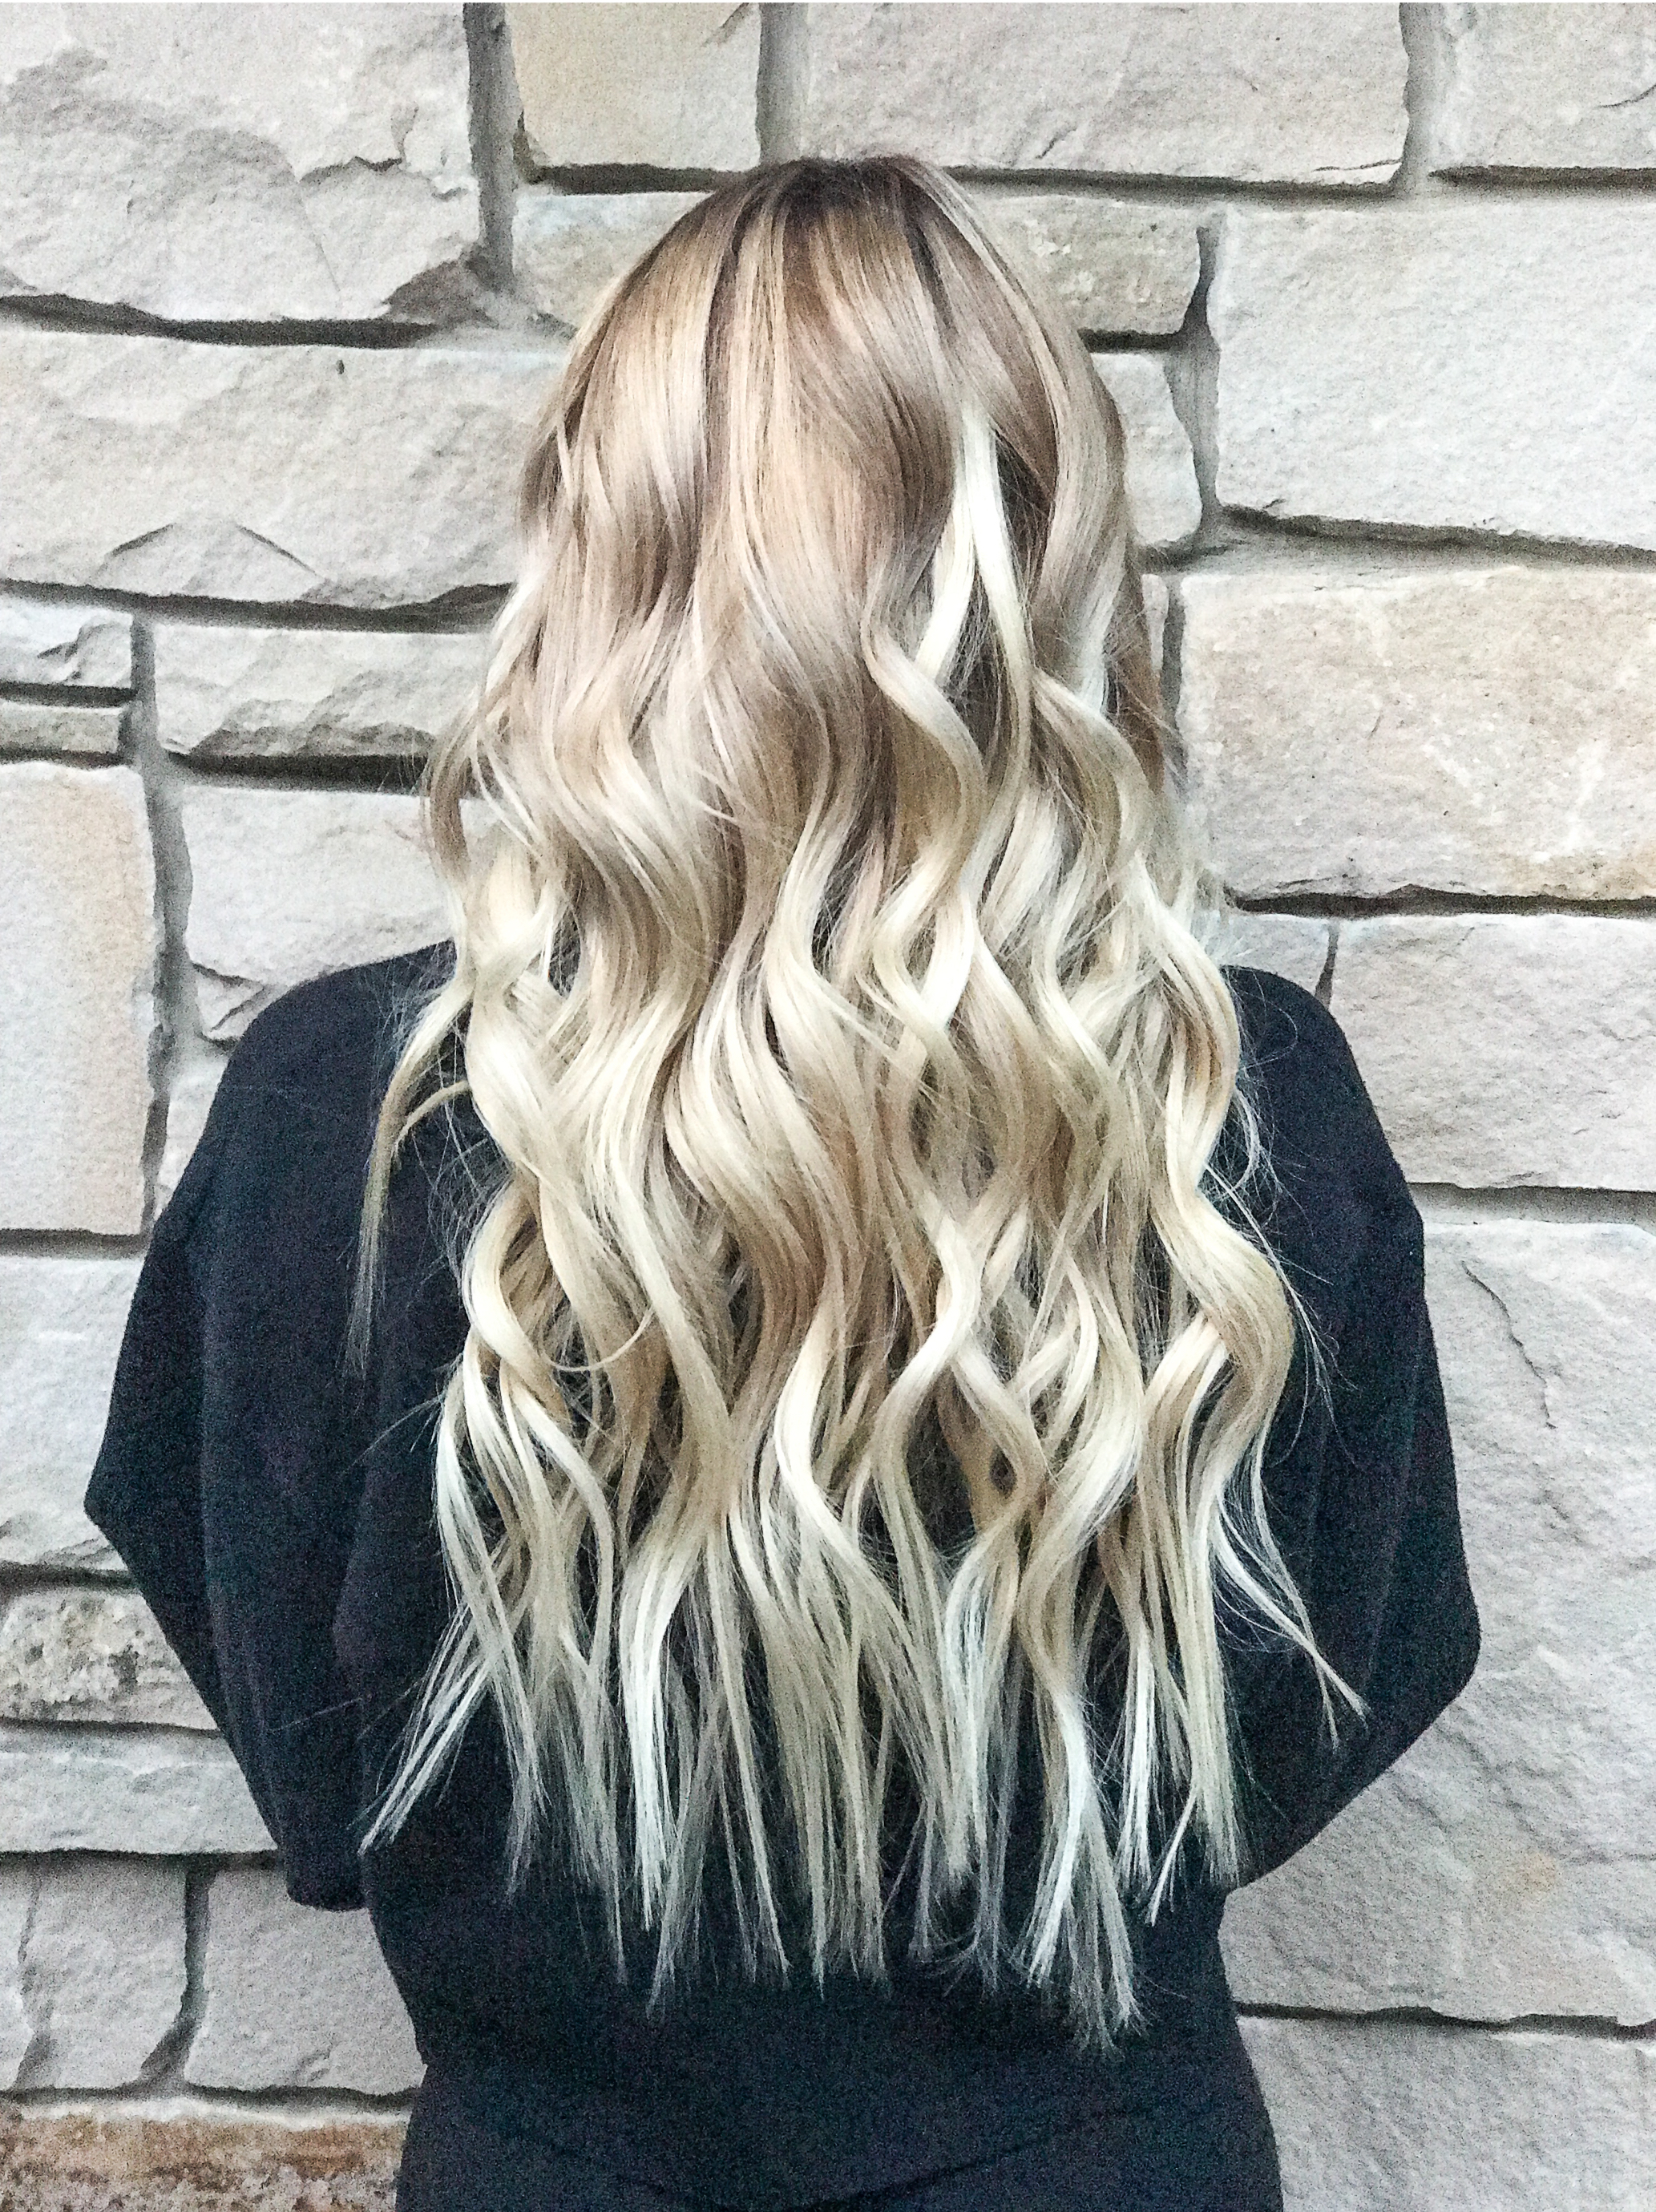 •Bayalage + Babylights + Extensions• - ✨See IG for Before✨We brought up her blonde using Blondor by Wella! And toned with Redken Shades EQ in 08N and 08V on the mid section, and did a shampoo cap to refresh the ends! 😍 and we used @babe_hairtape in extensions!